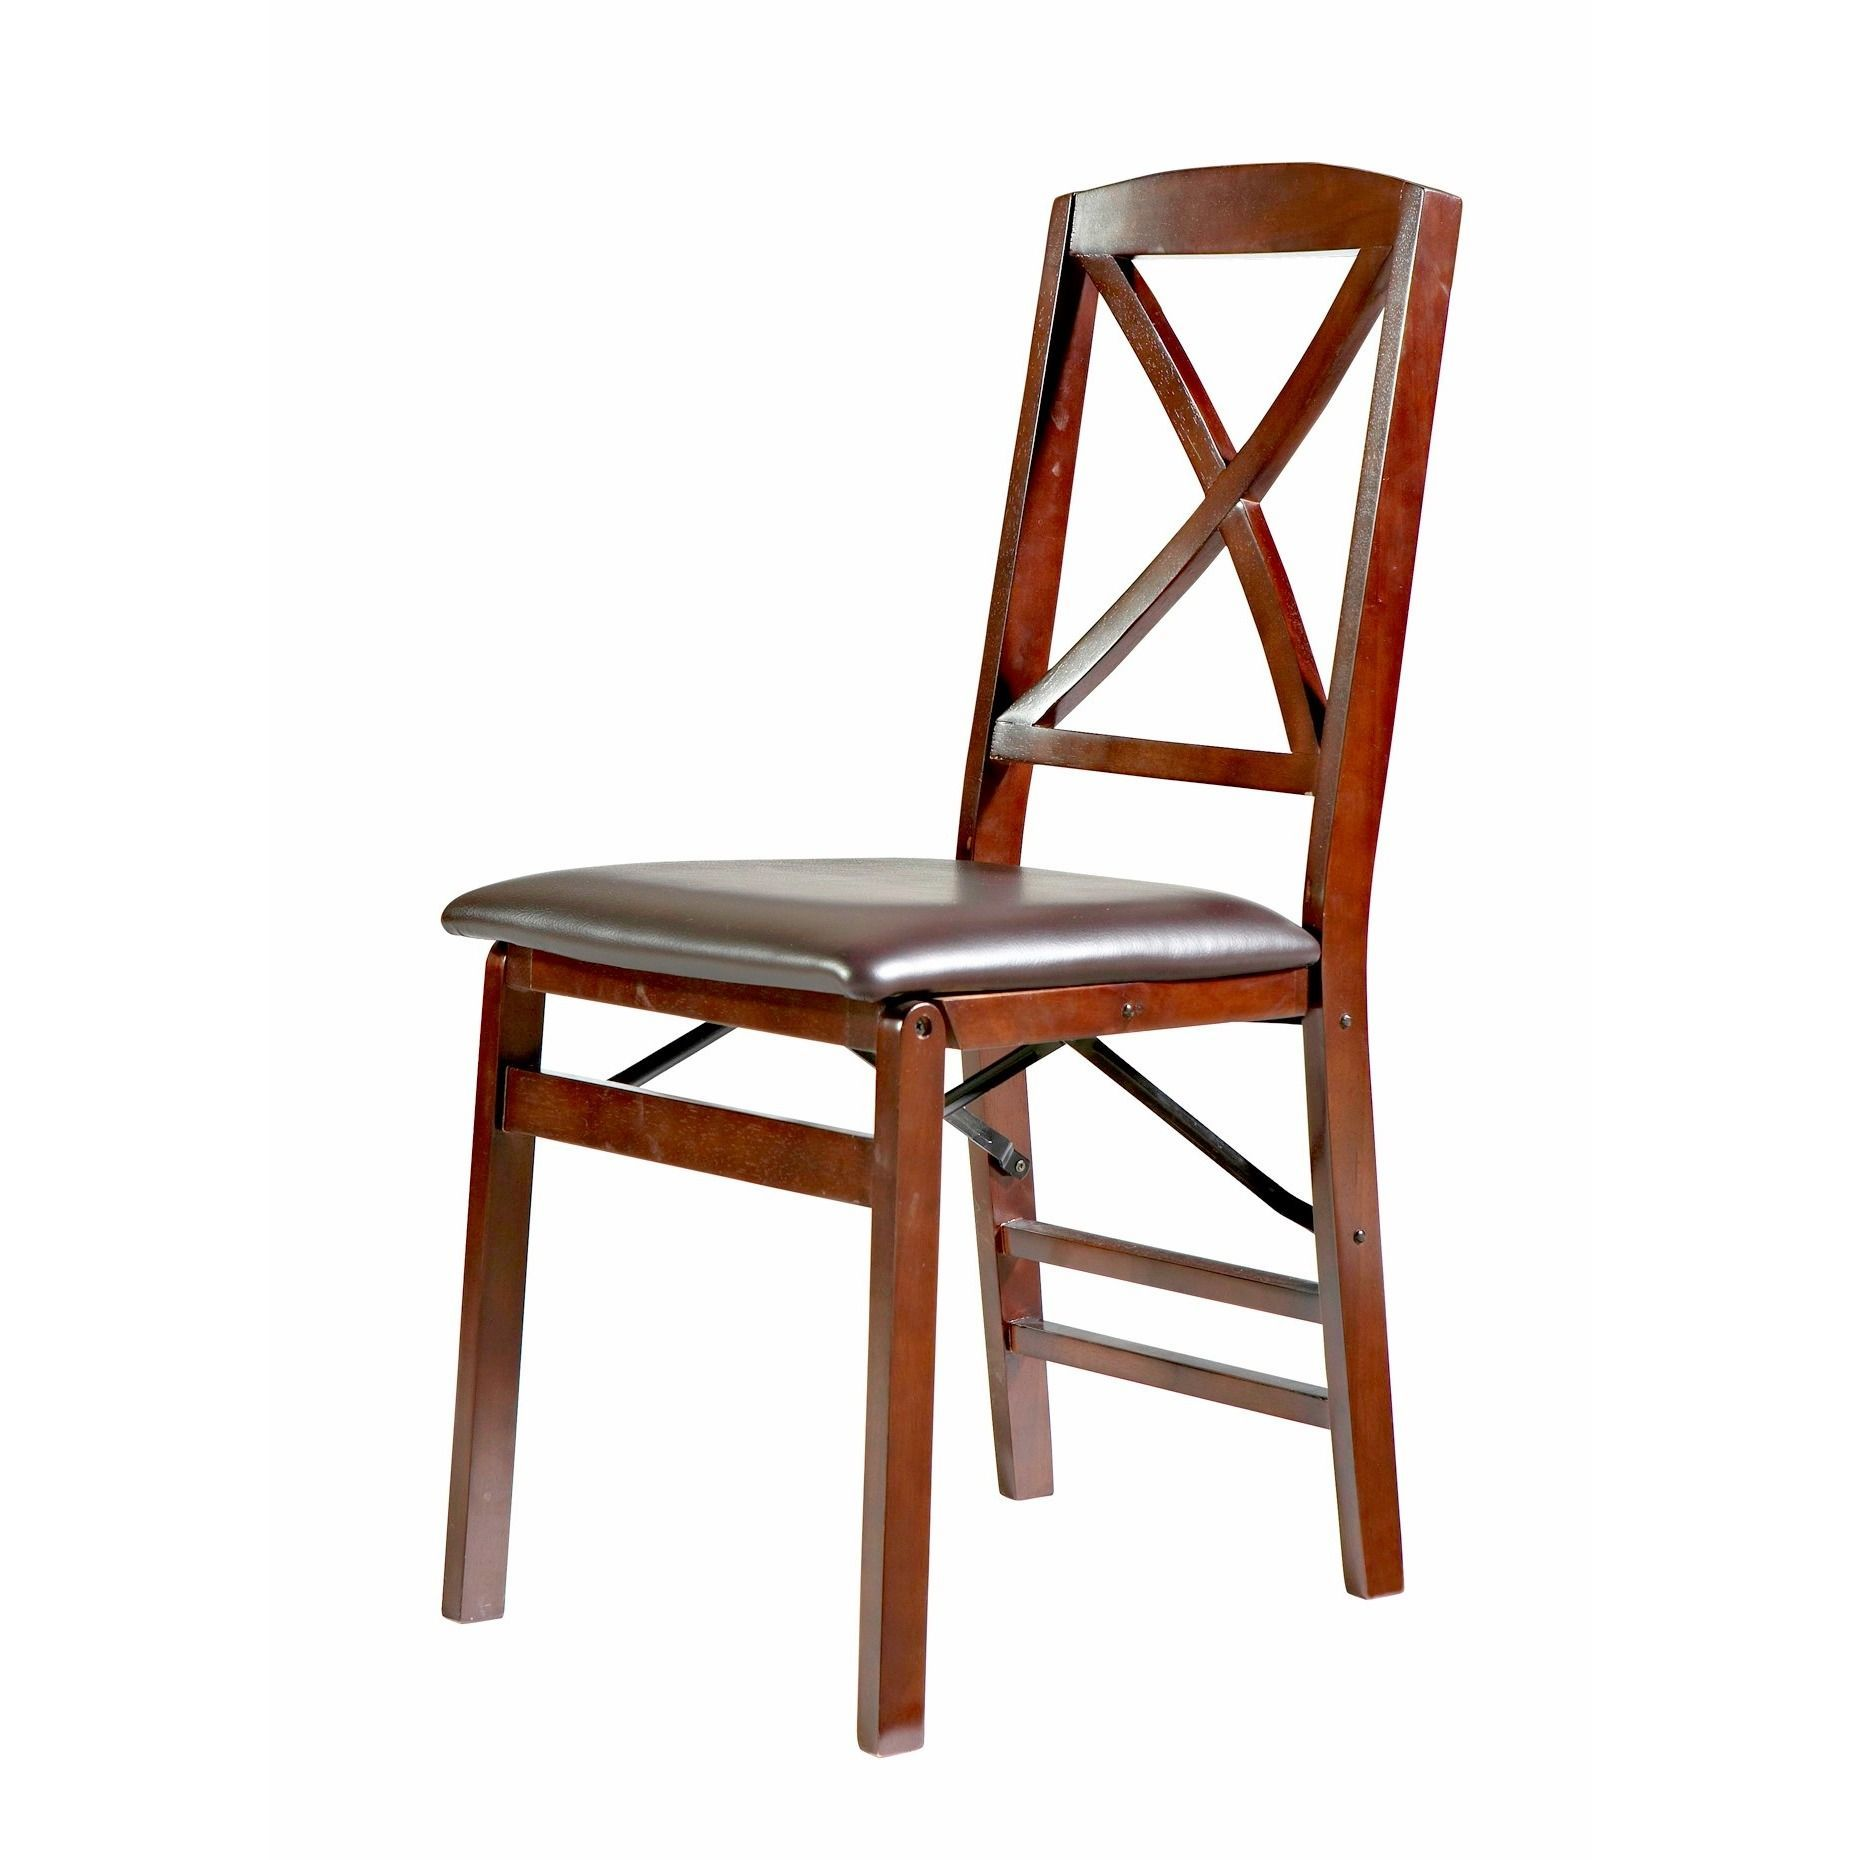 Miraculous Linon Lesvos Espresso X Back Folding Chair Set Of 2 Dark Squirreltailoven Fun Painted Chair Ideas Images Squirreltailovenorg